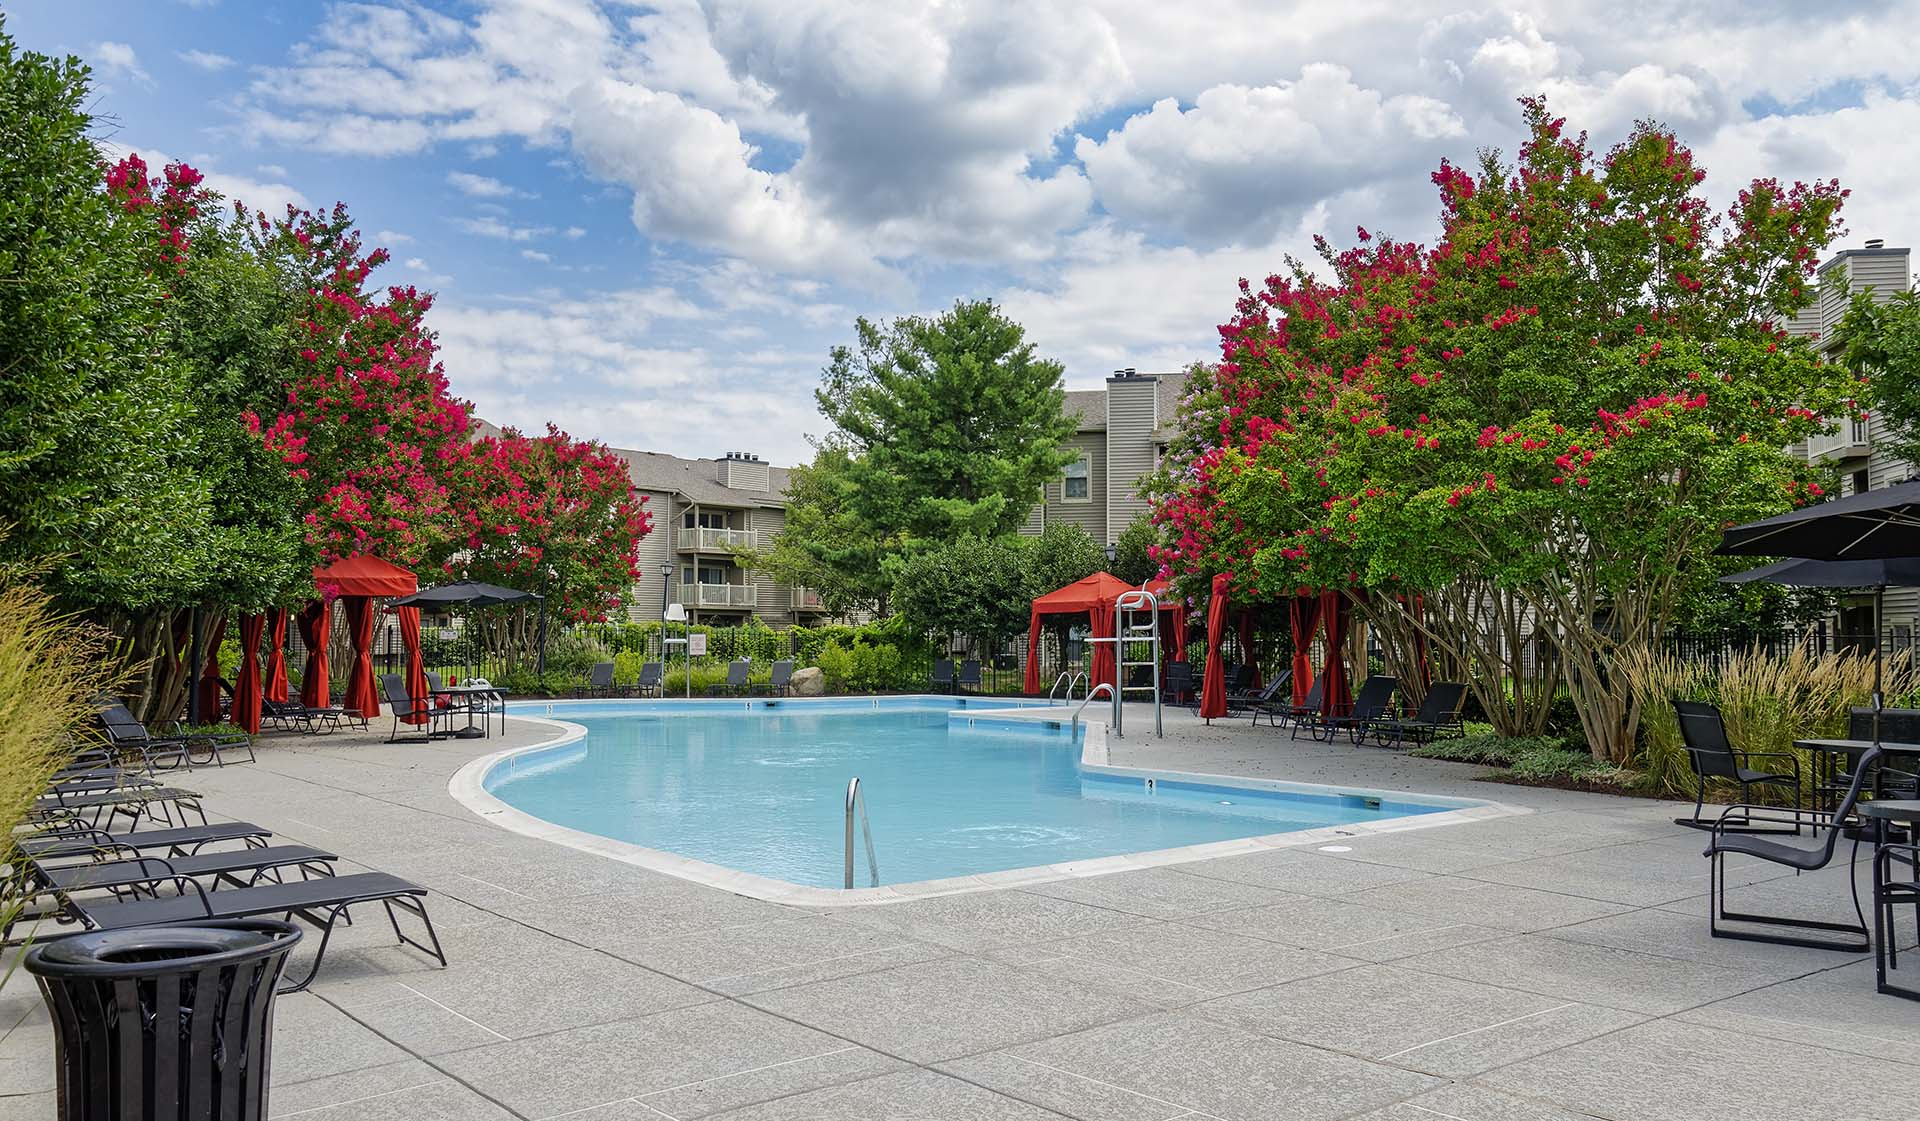 Shenandoah Crossing Apartment Homes for rent in Fairfax, VA - Pool